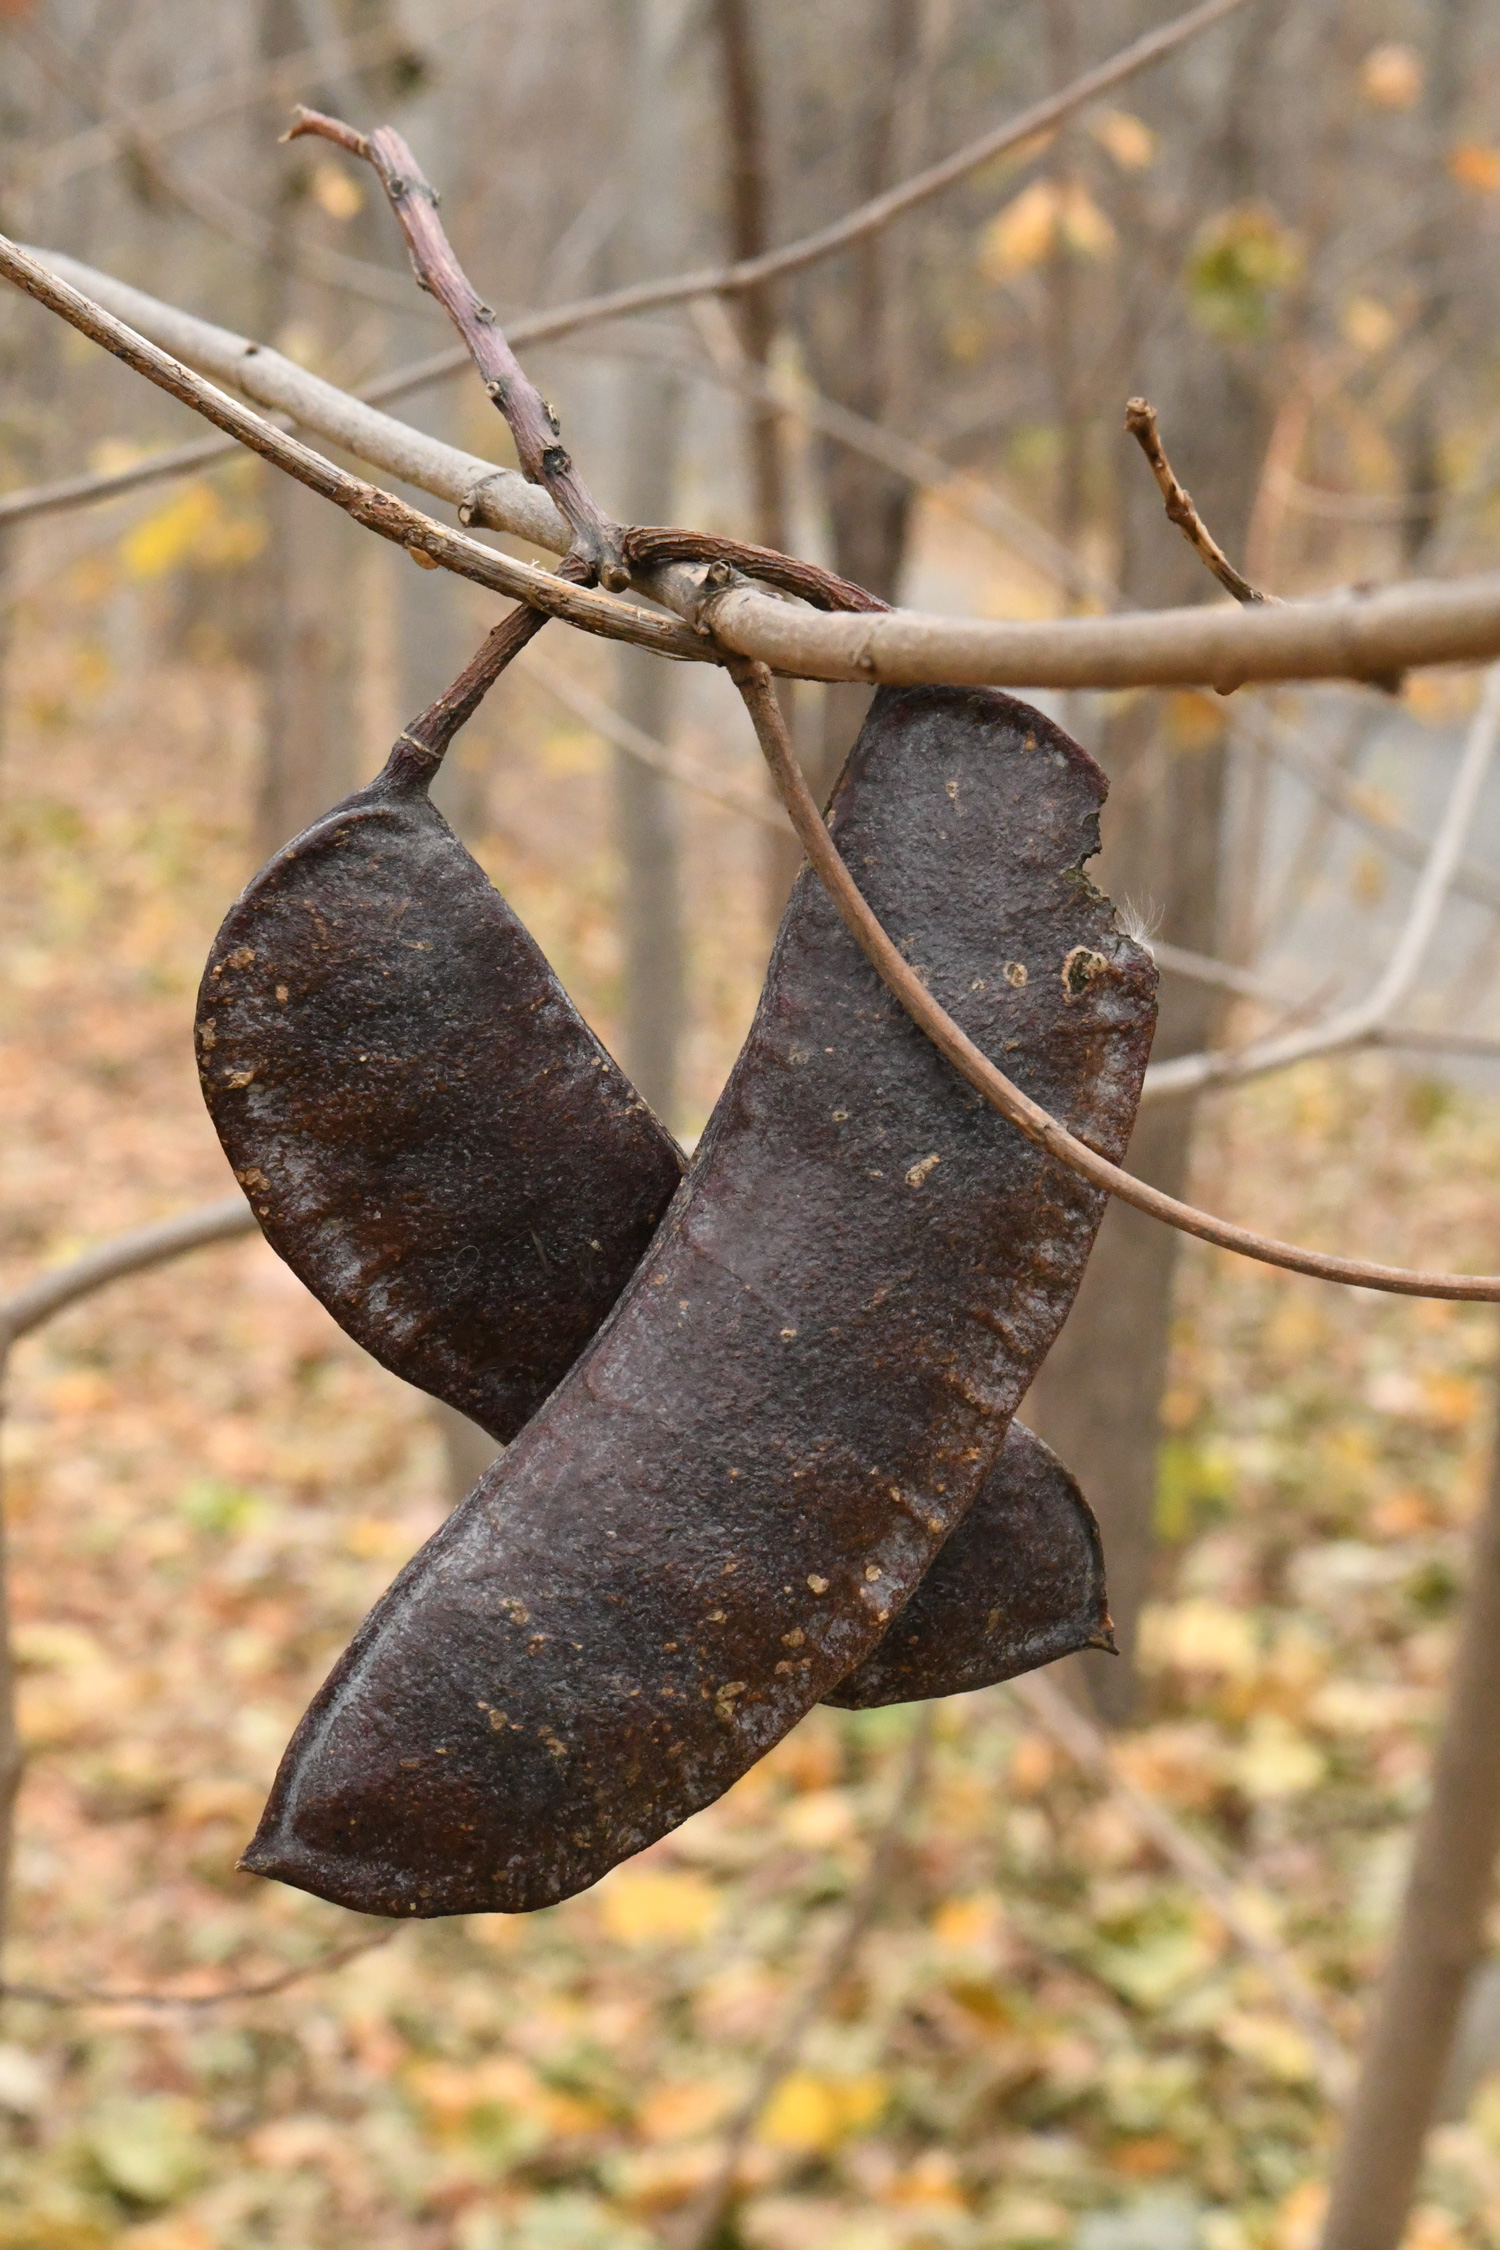 Kentucky coffeetree pods, Prospect Park